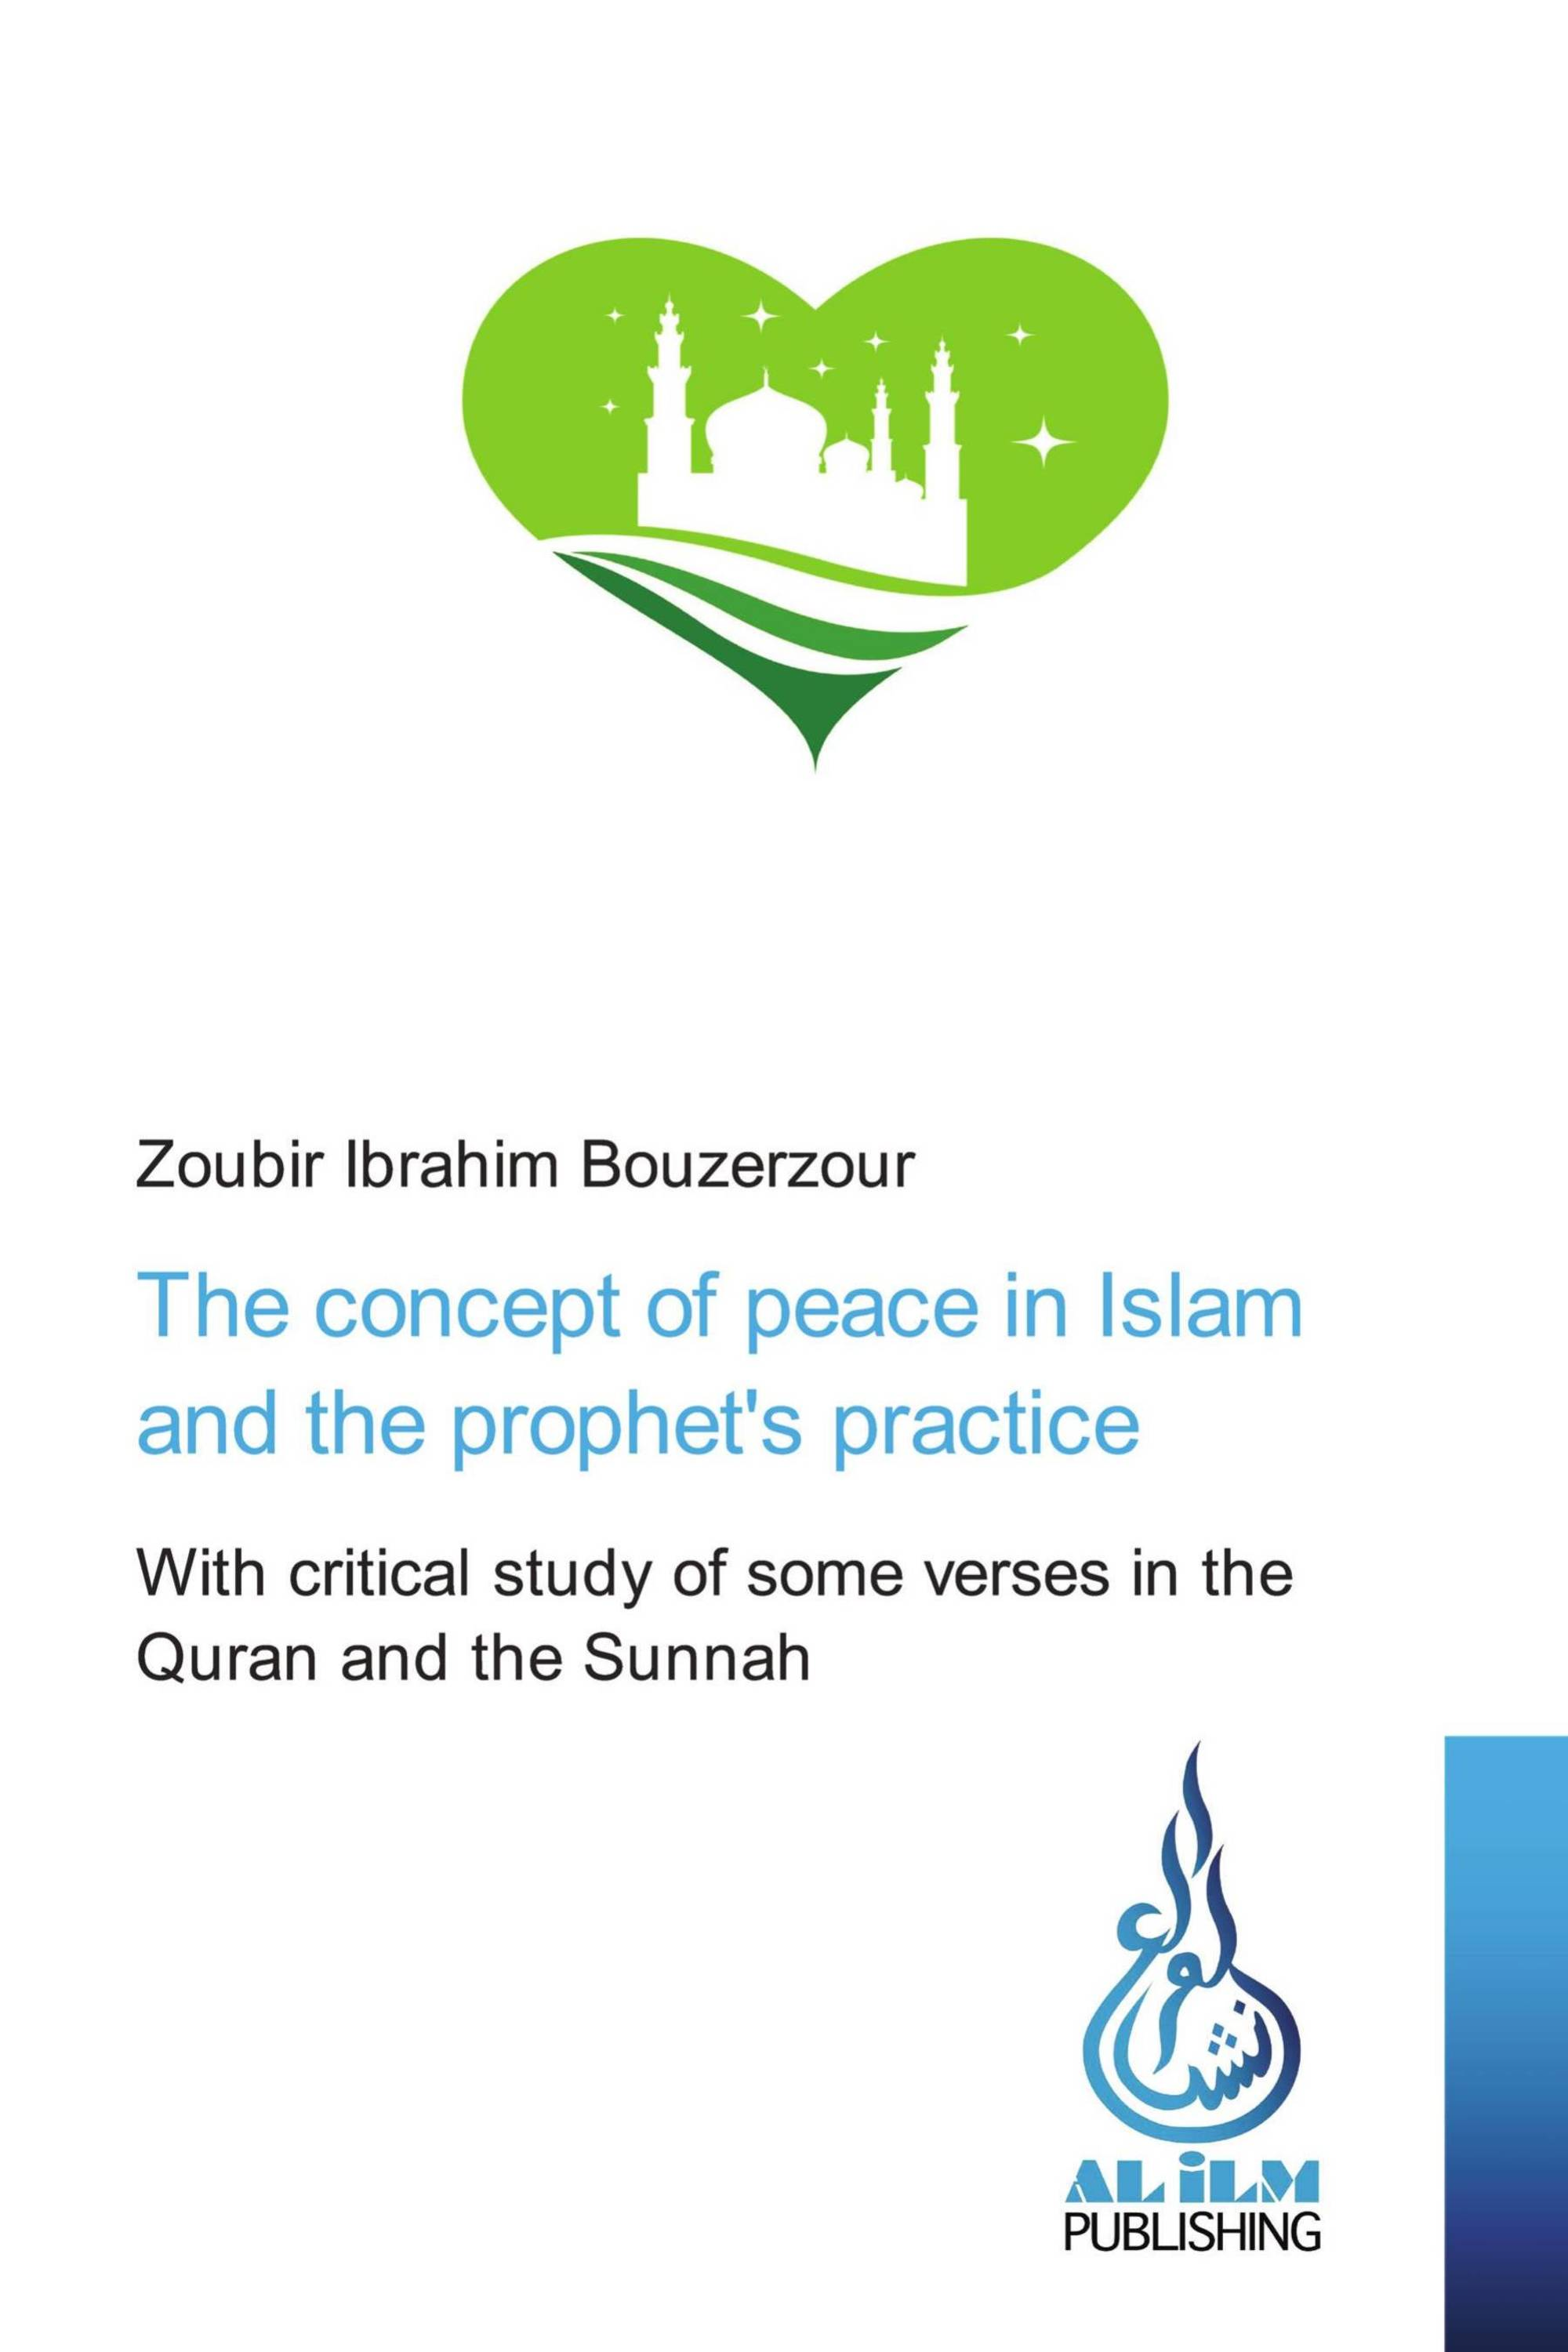 The concept of peace in Islam and the prophet's practice